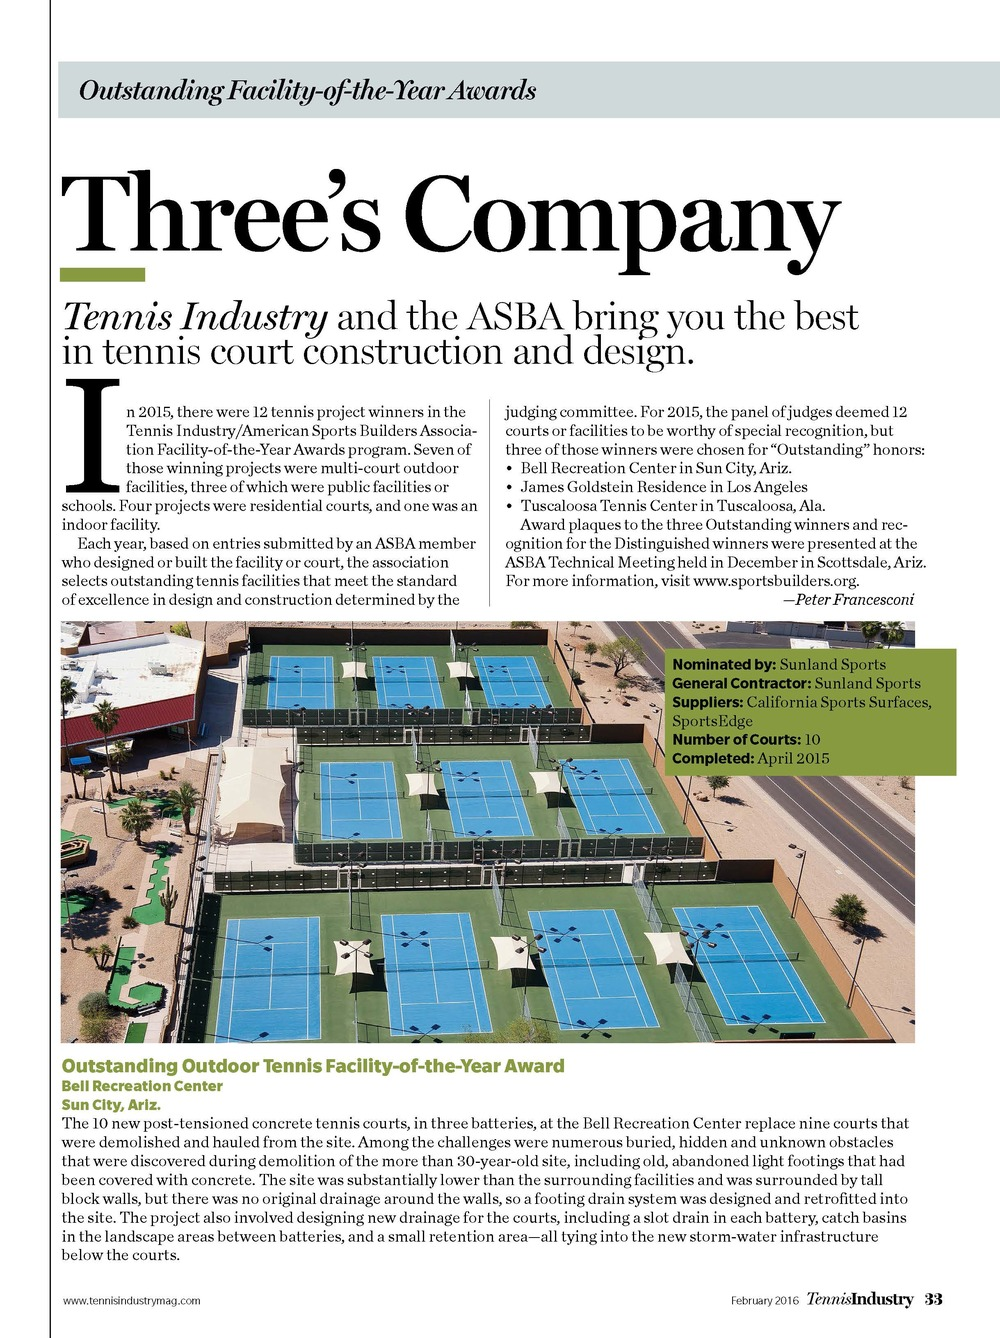 Tennis Industry Award Best Tennis Courts